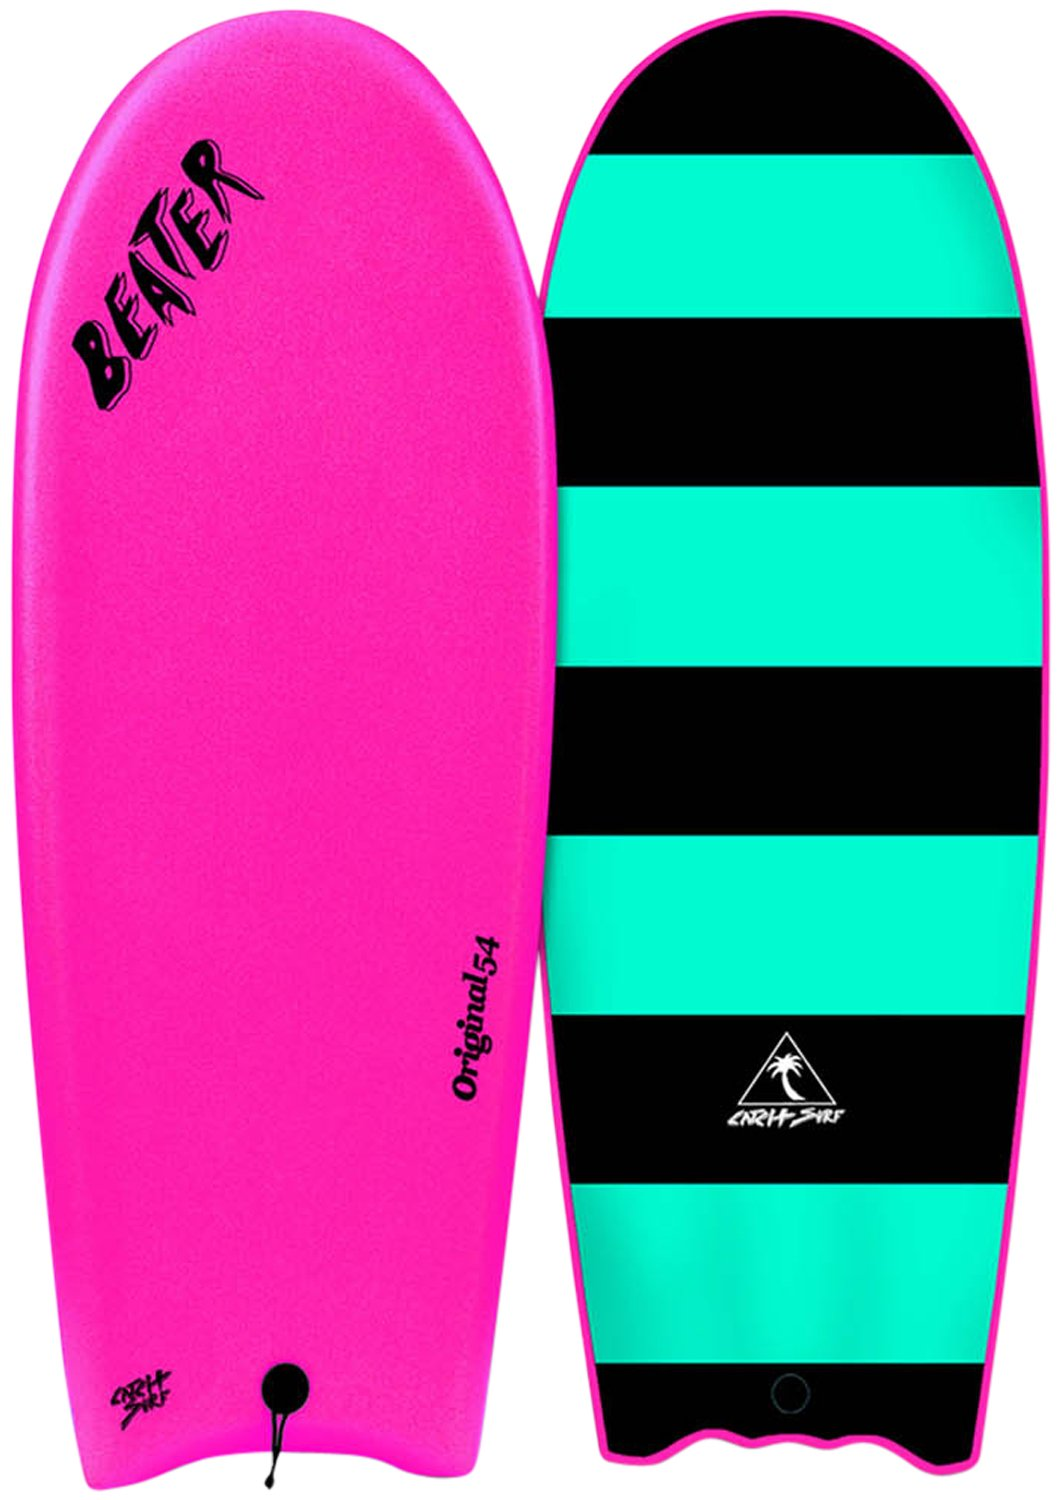 Catch Surf Beater Original 54 - Finless, Hot Pink, One Size